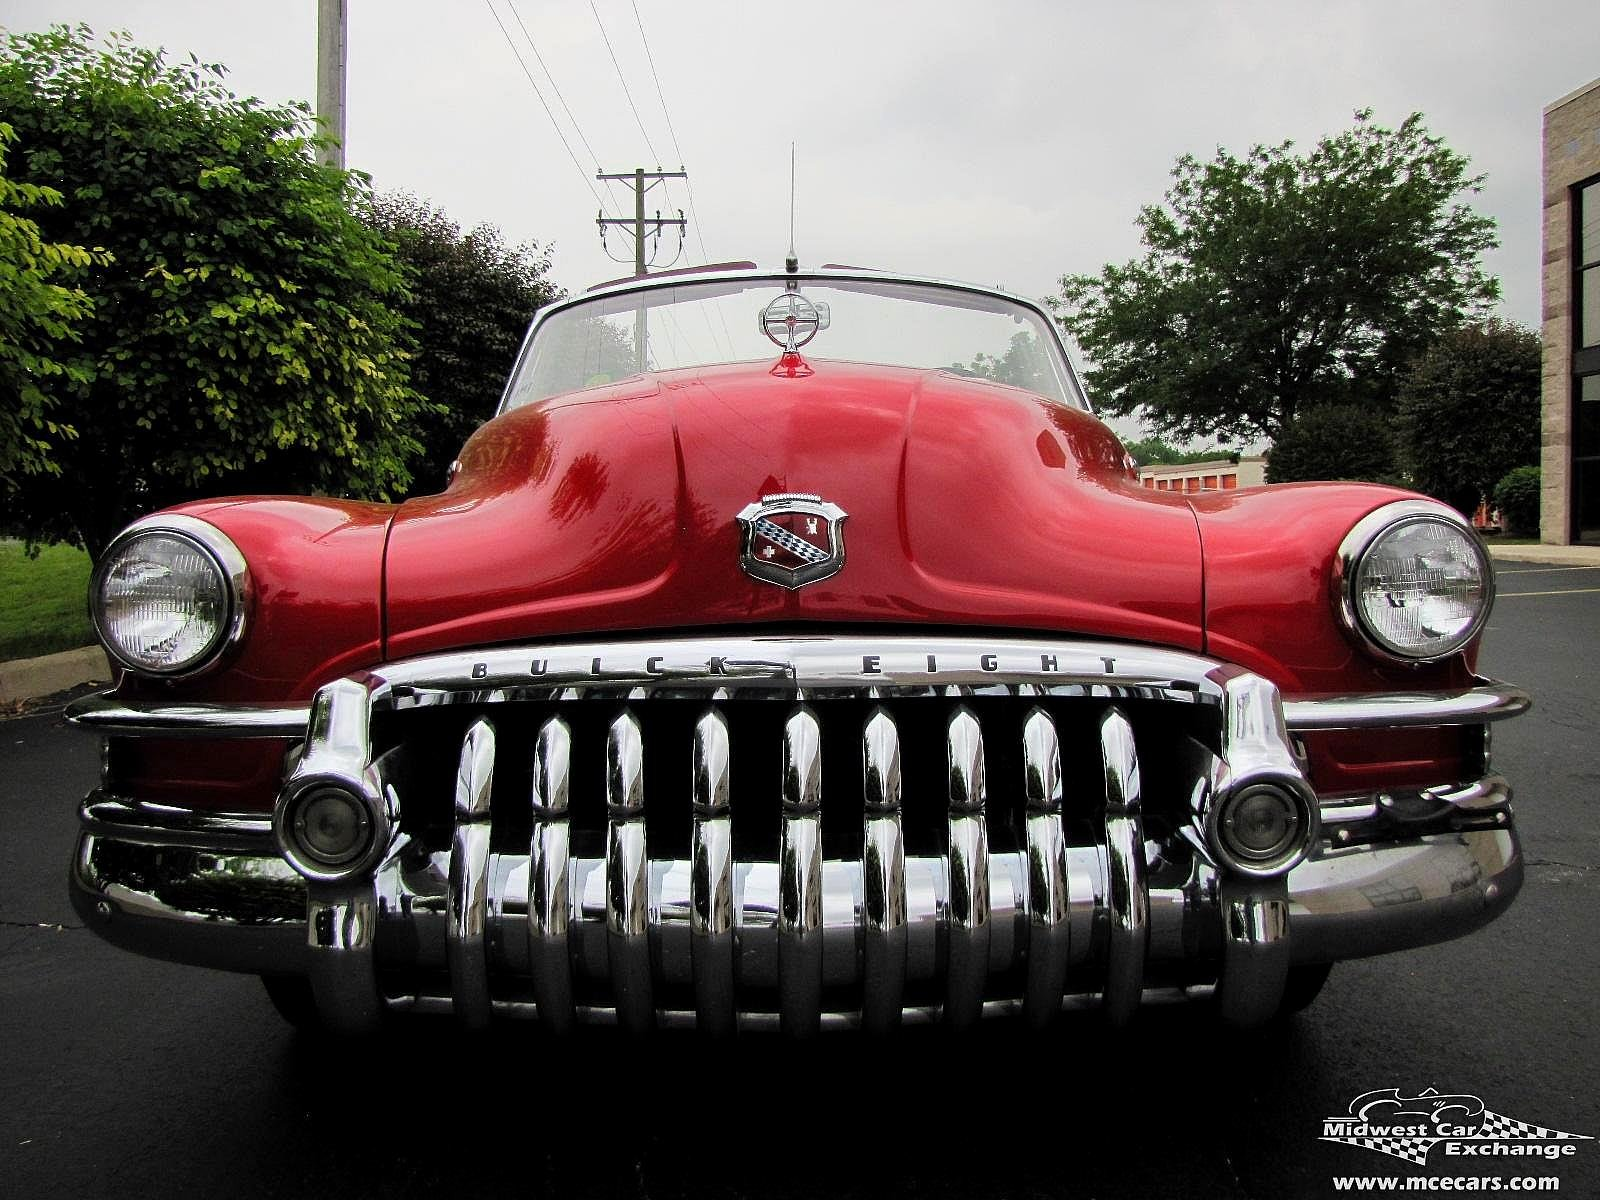 passion for sale buick dedicated old com of kept antique enthusiasts riviera super class a by alive nice classiccars buicks